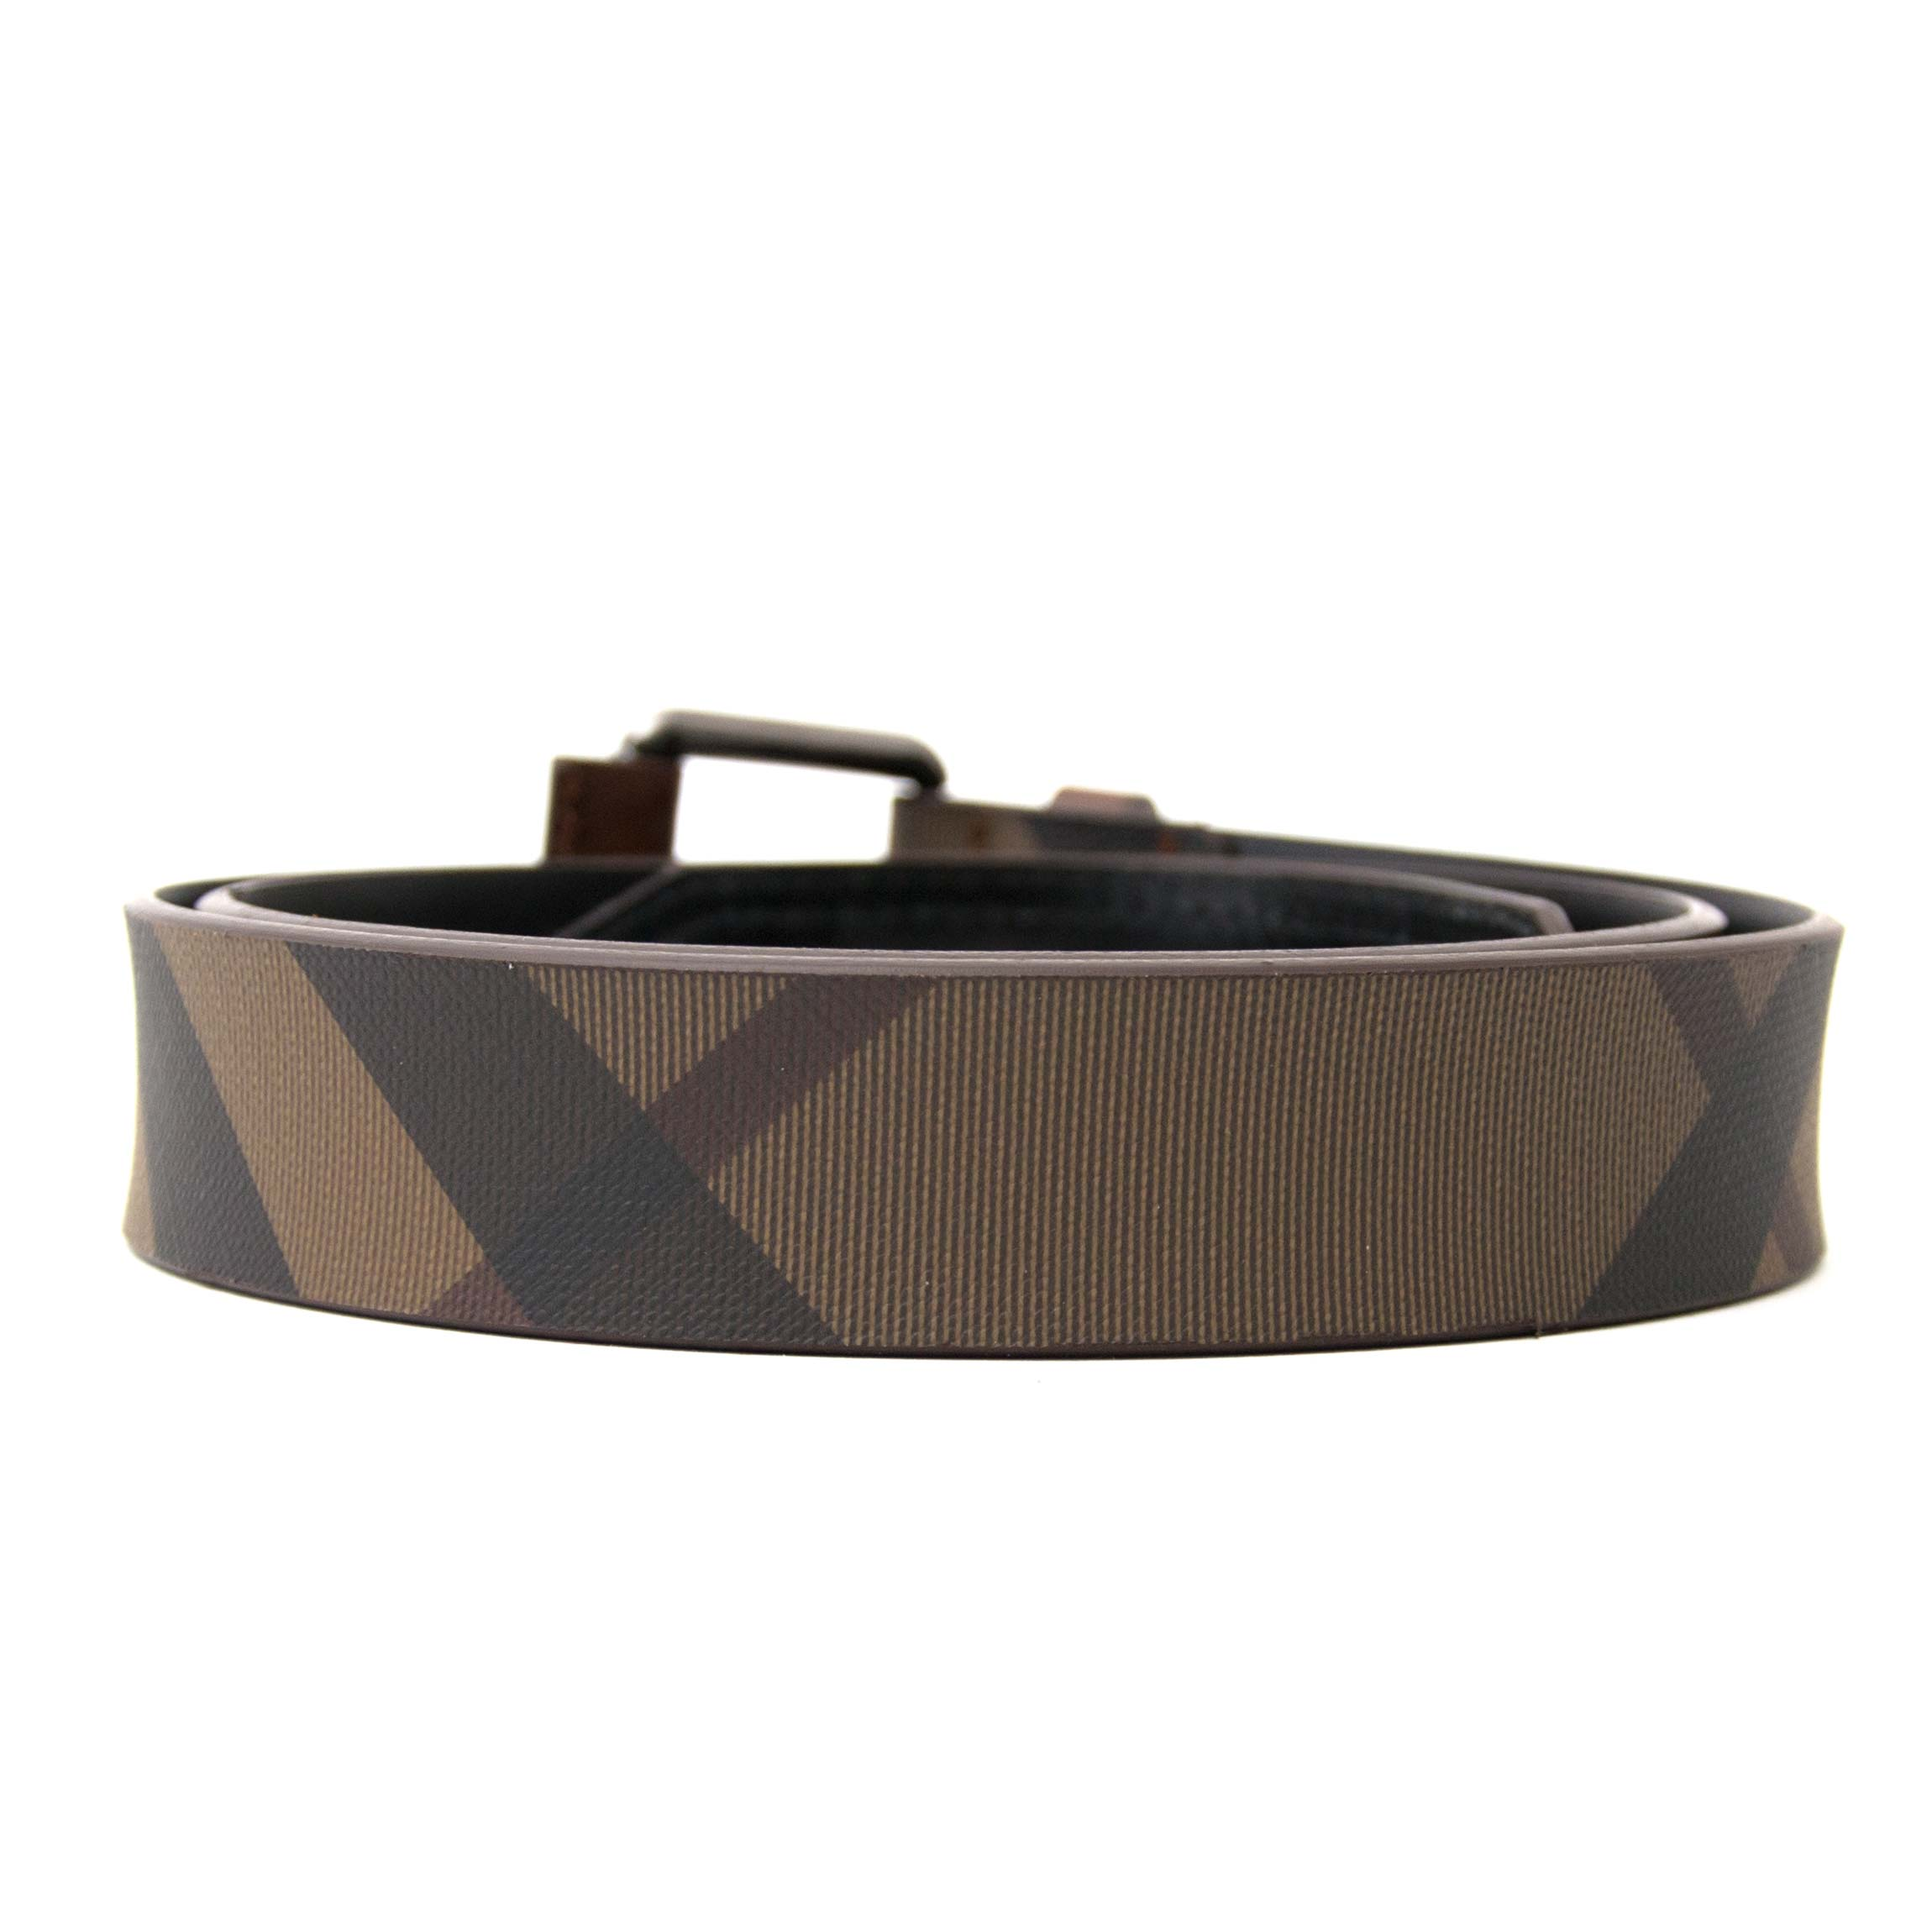 Burberry 'Lovit' Brown Smoked Check Belt for sale in Antwerp, www.labellov.com, 100% authentic.